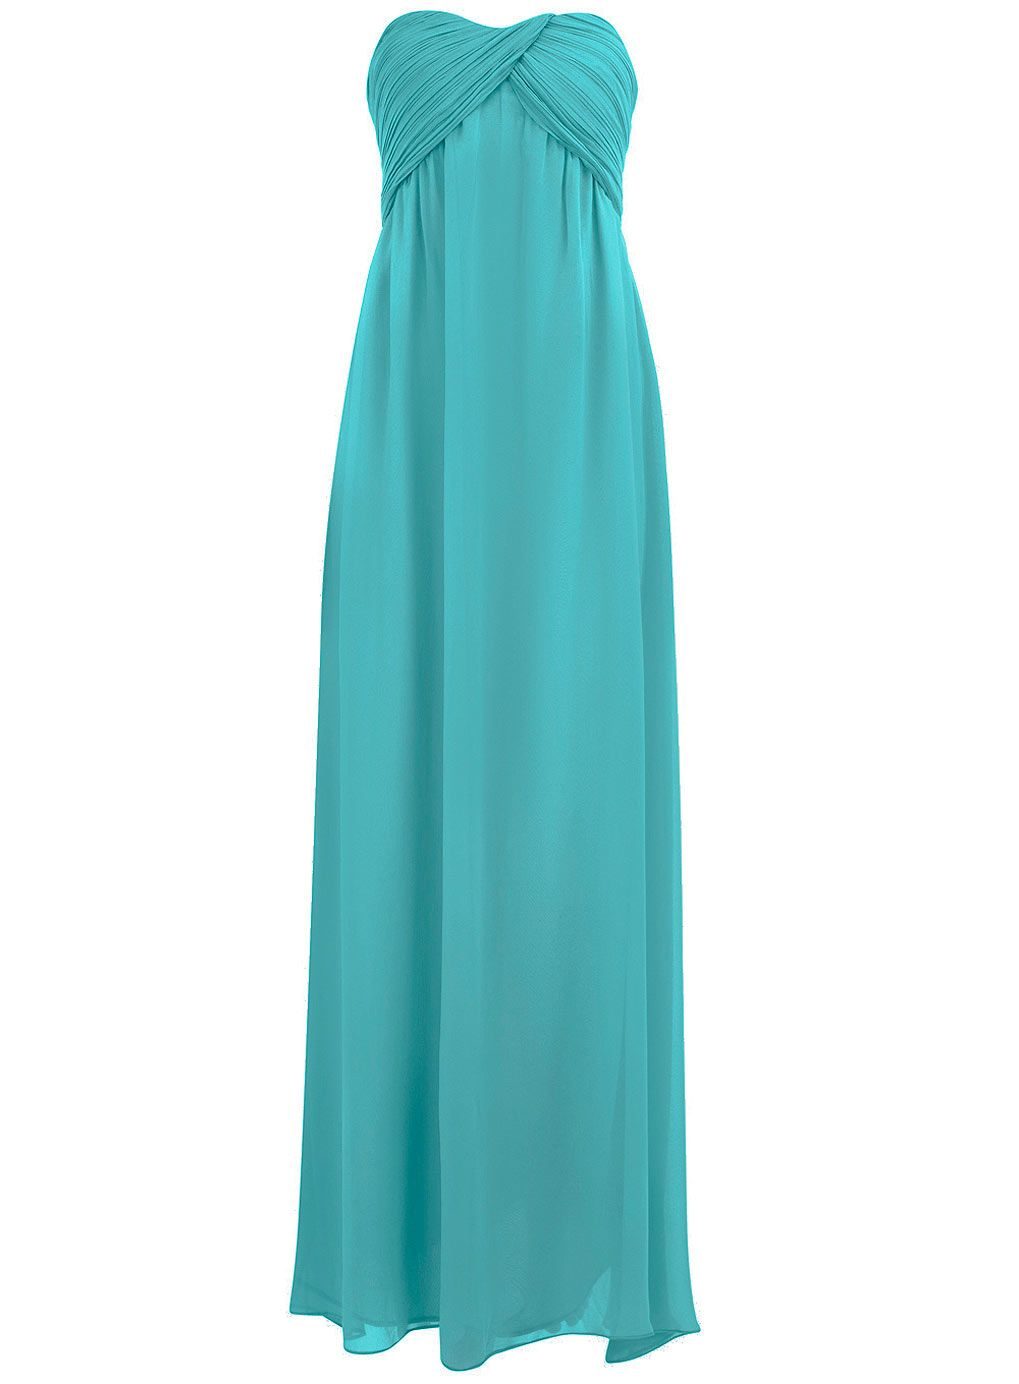 Collection Turquoise Maxi Dresses Pictures - Reikian